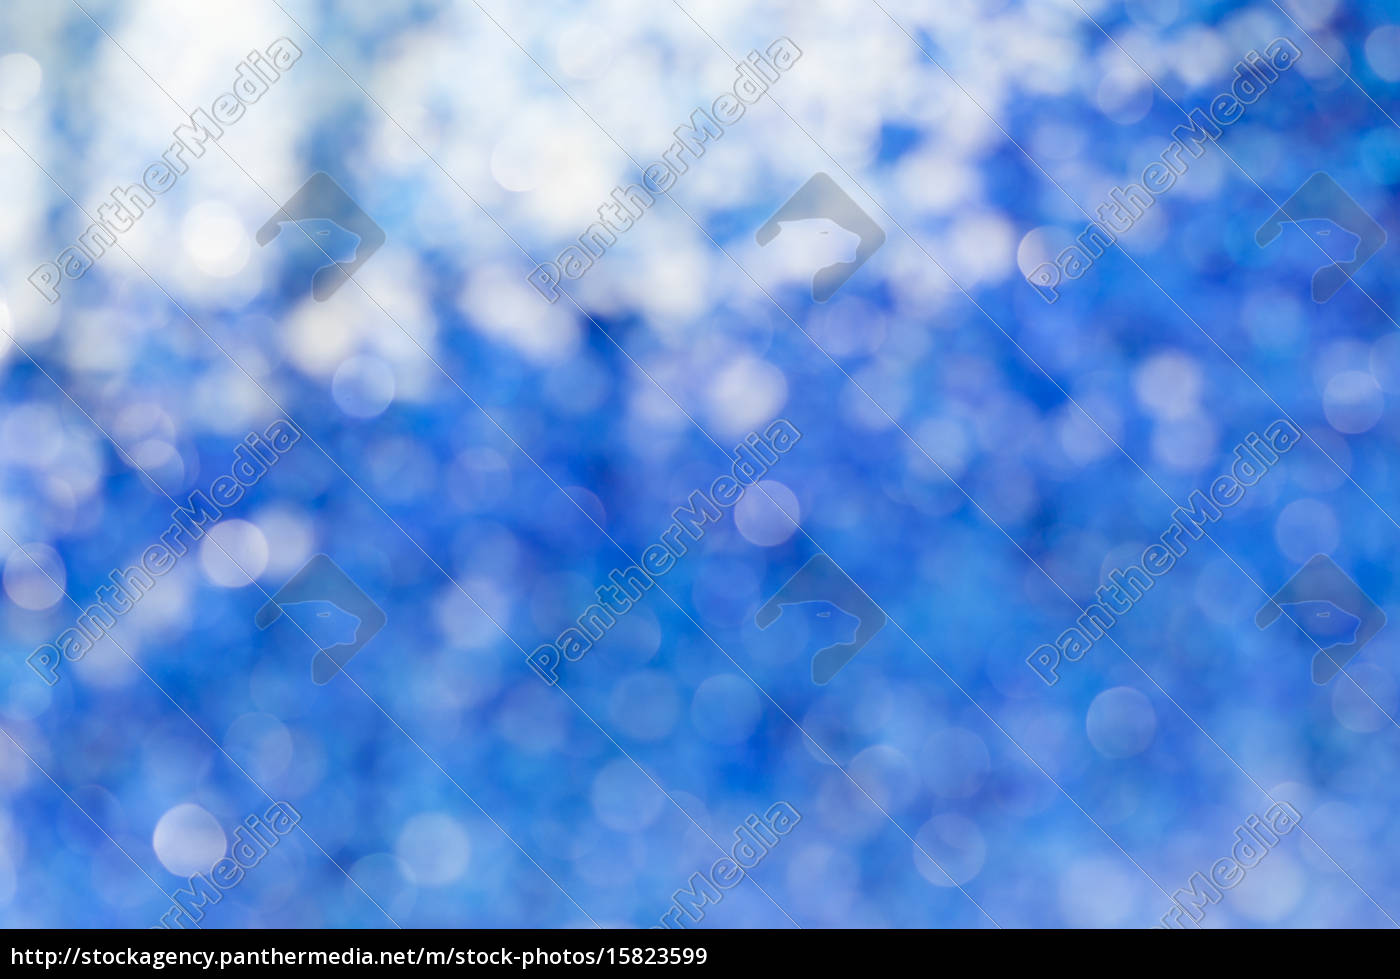 blue, blurred, background - 15823599